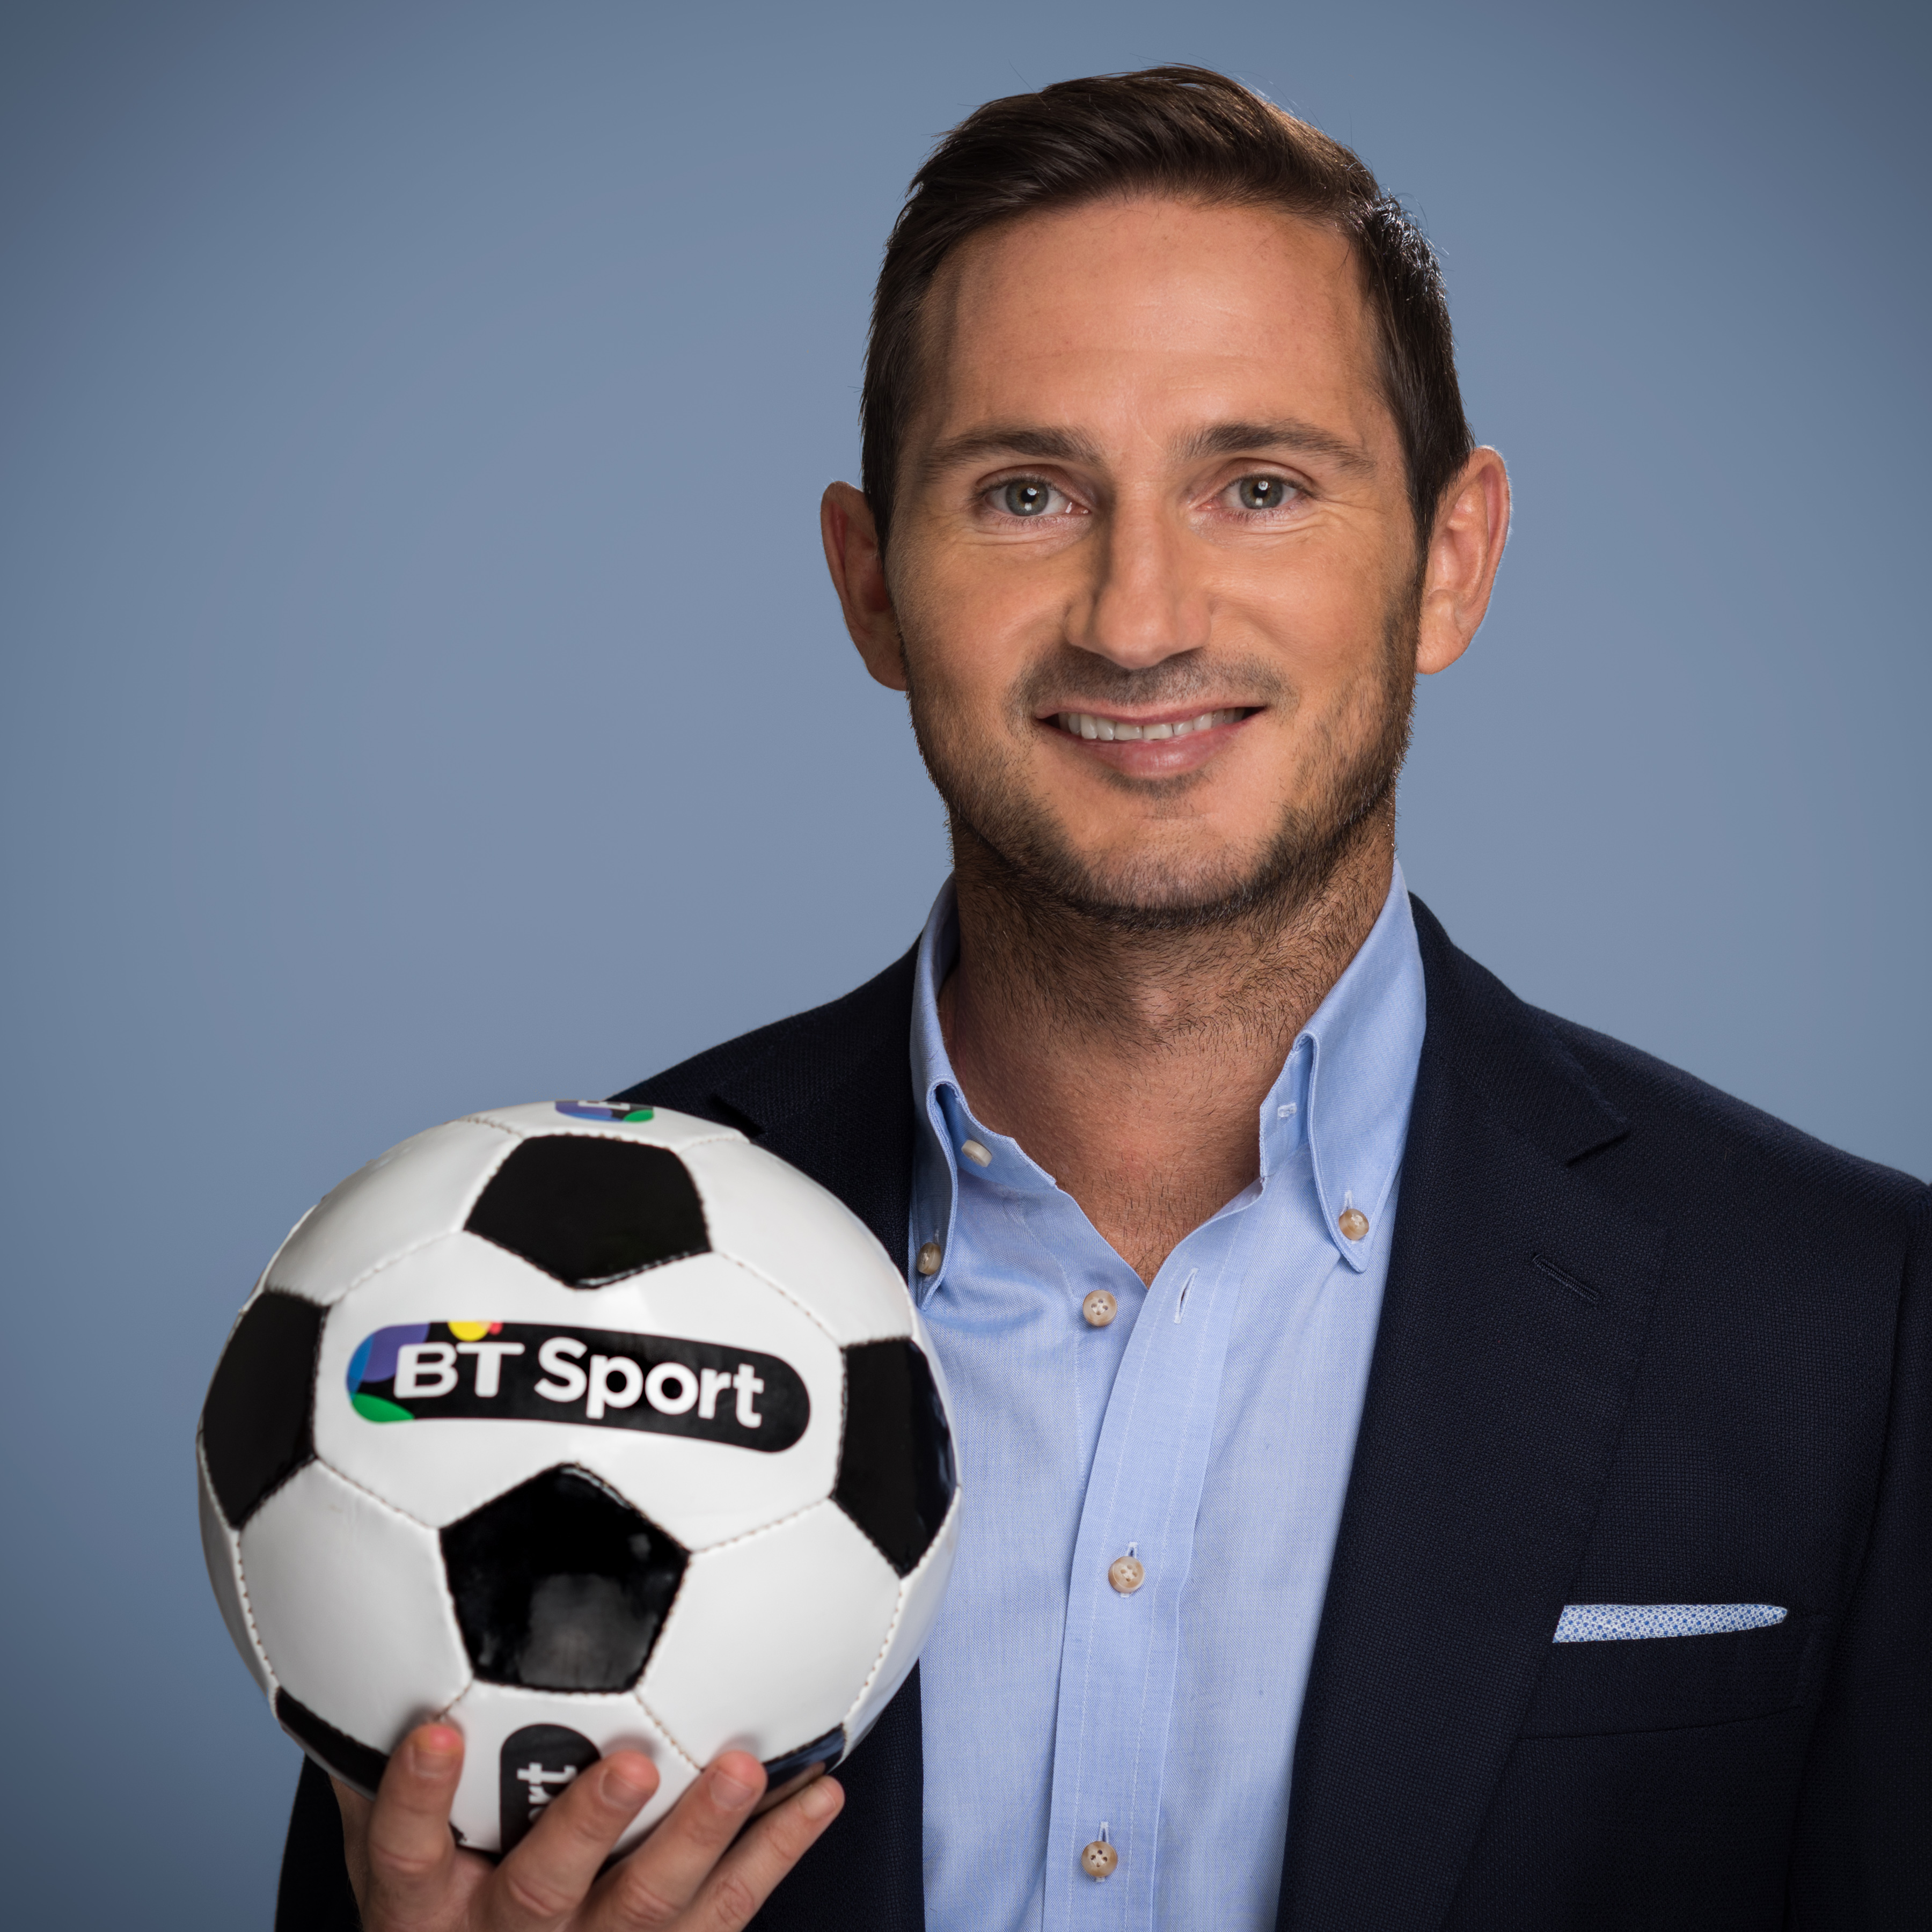 Frank Lampard signs for BT Sport